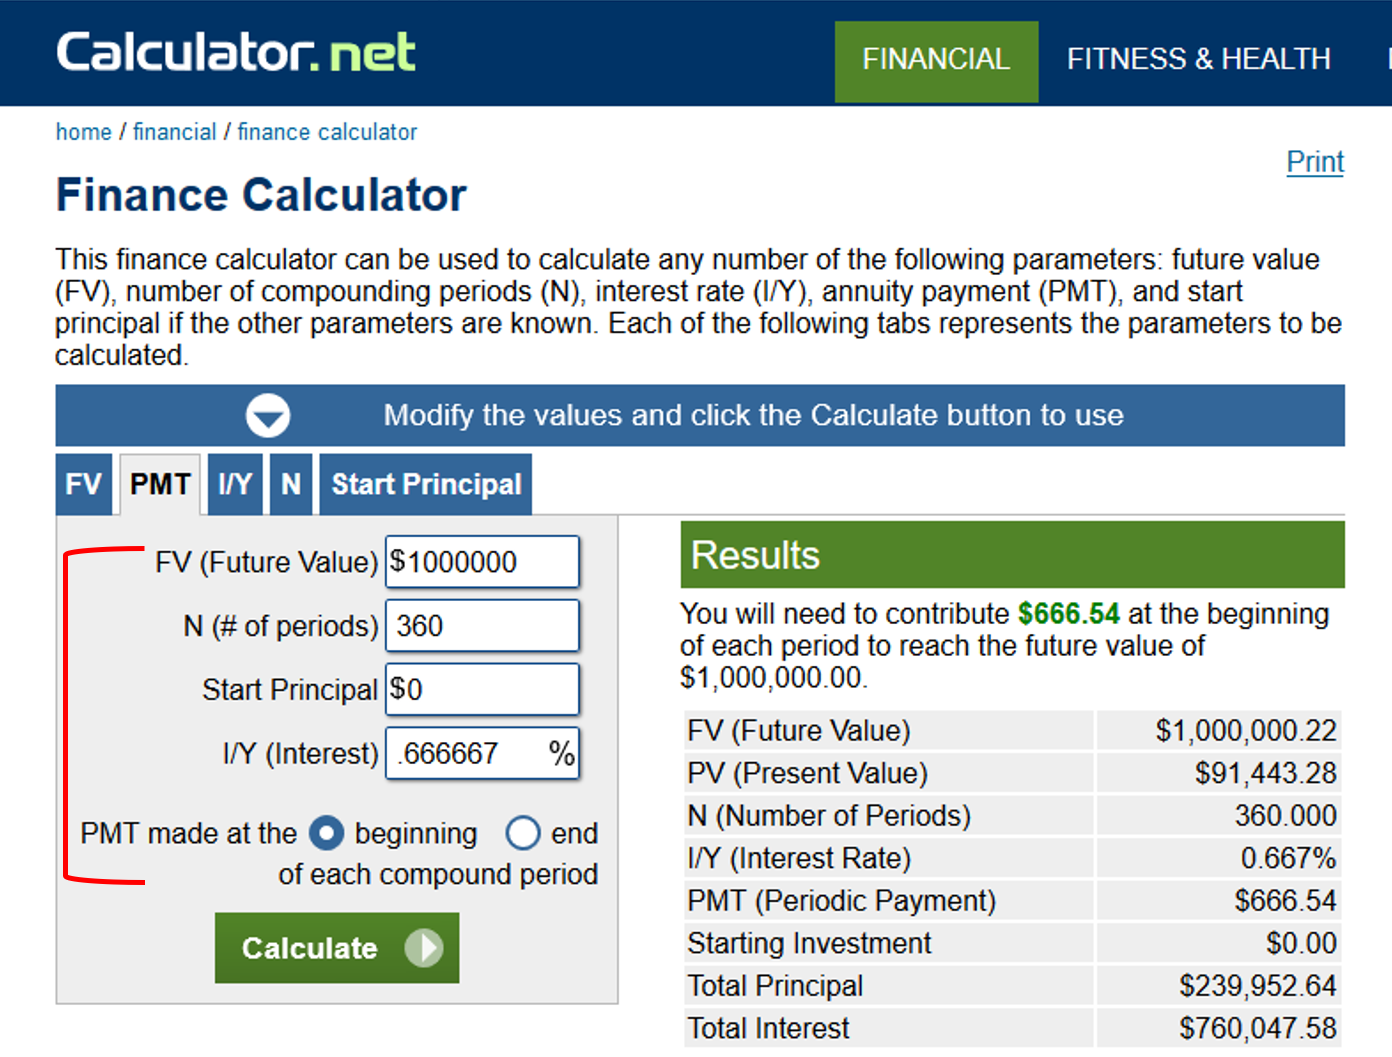 Finance Calculator Inputs